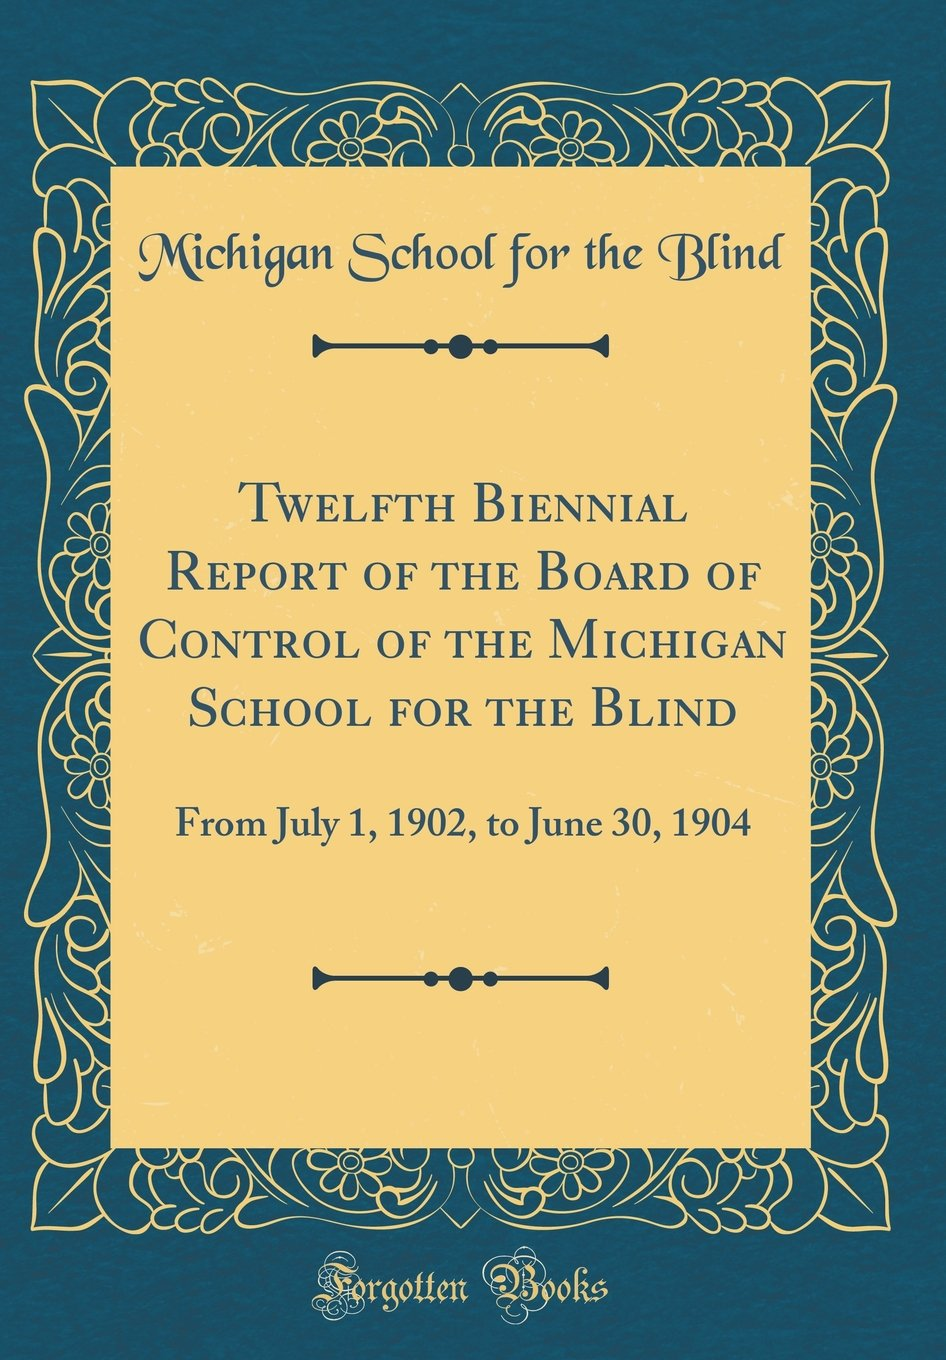 Download Twelfth Biennial Report of the Board of Control of the Michigan School for the Blind: From July 1, 1902, to June 30, 1904 (Classic Reprint) ebook